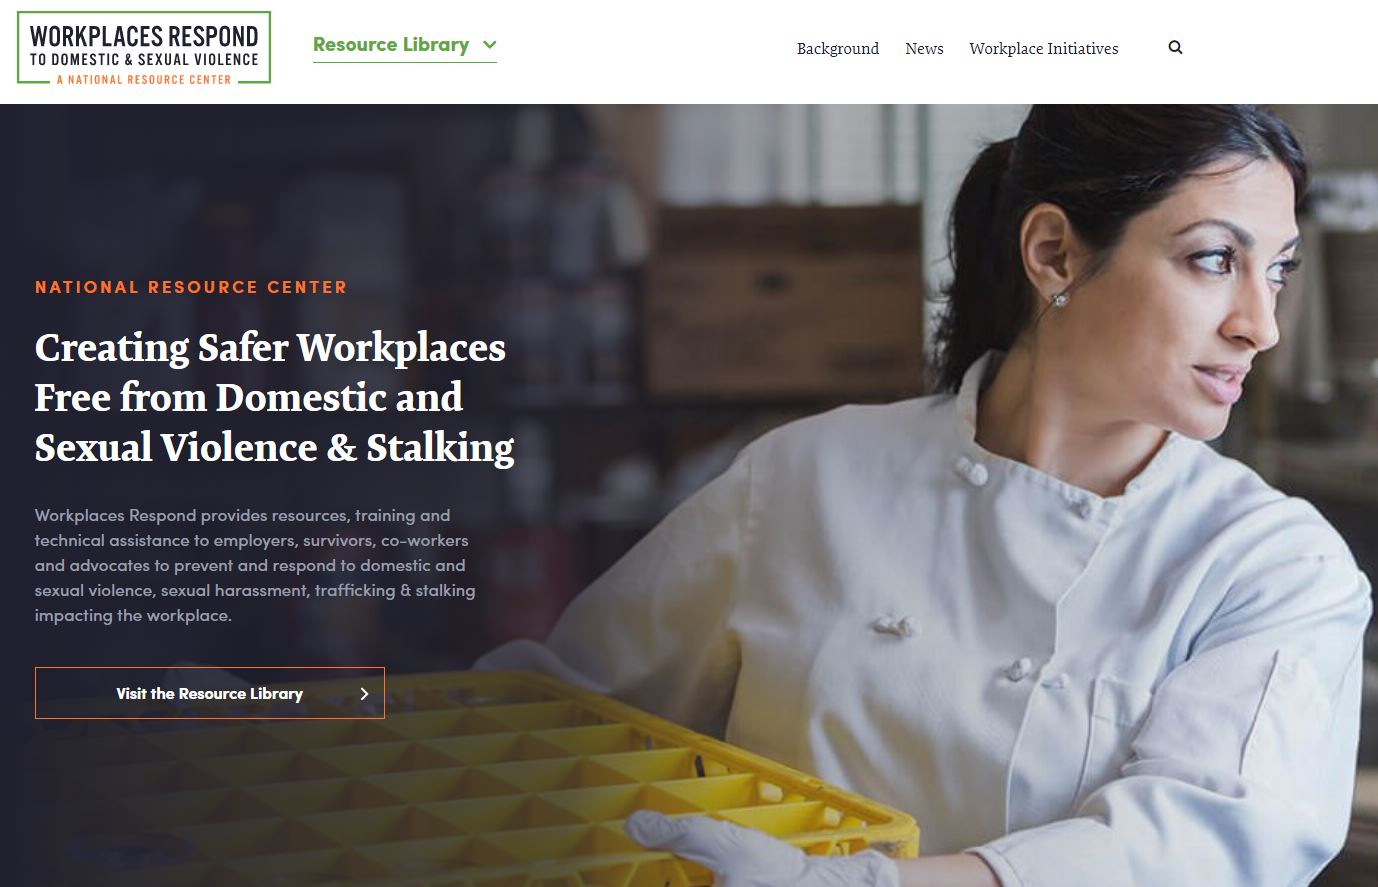 Workplaces Respond to Domestic and Sexual Violence: A National Resource Center